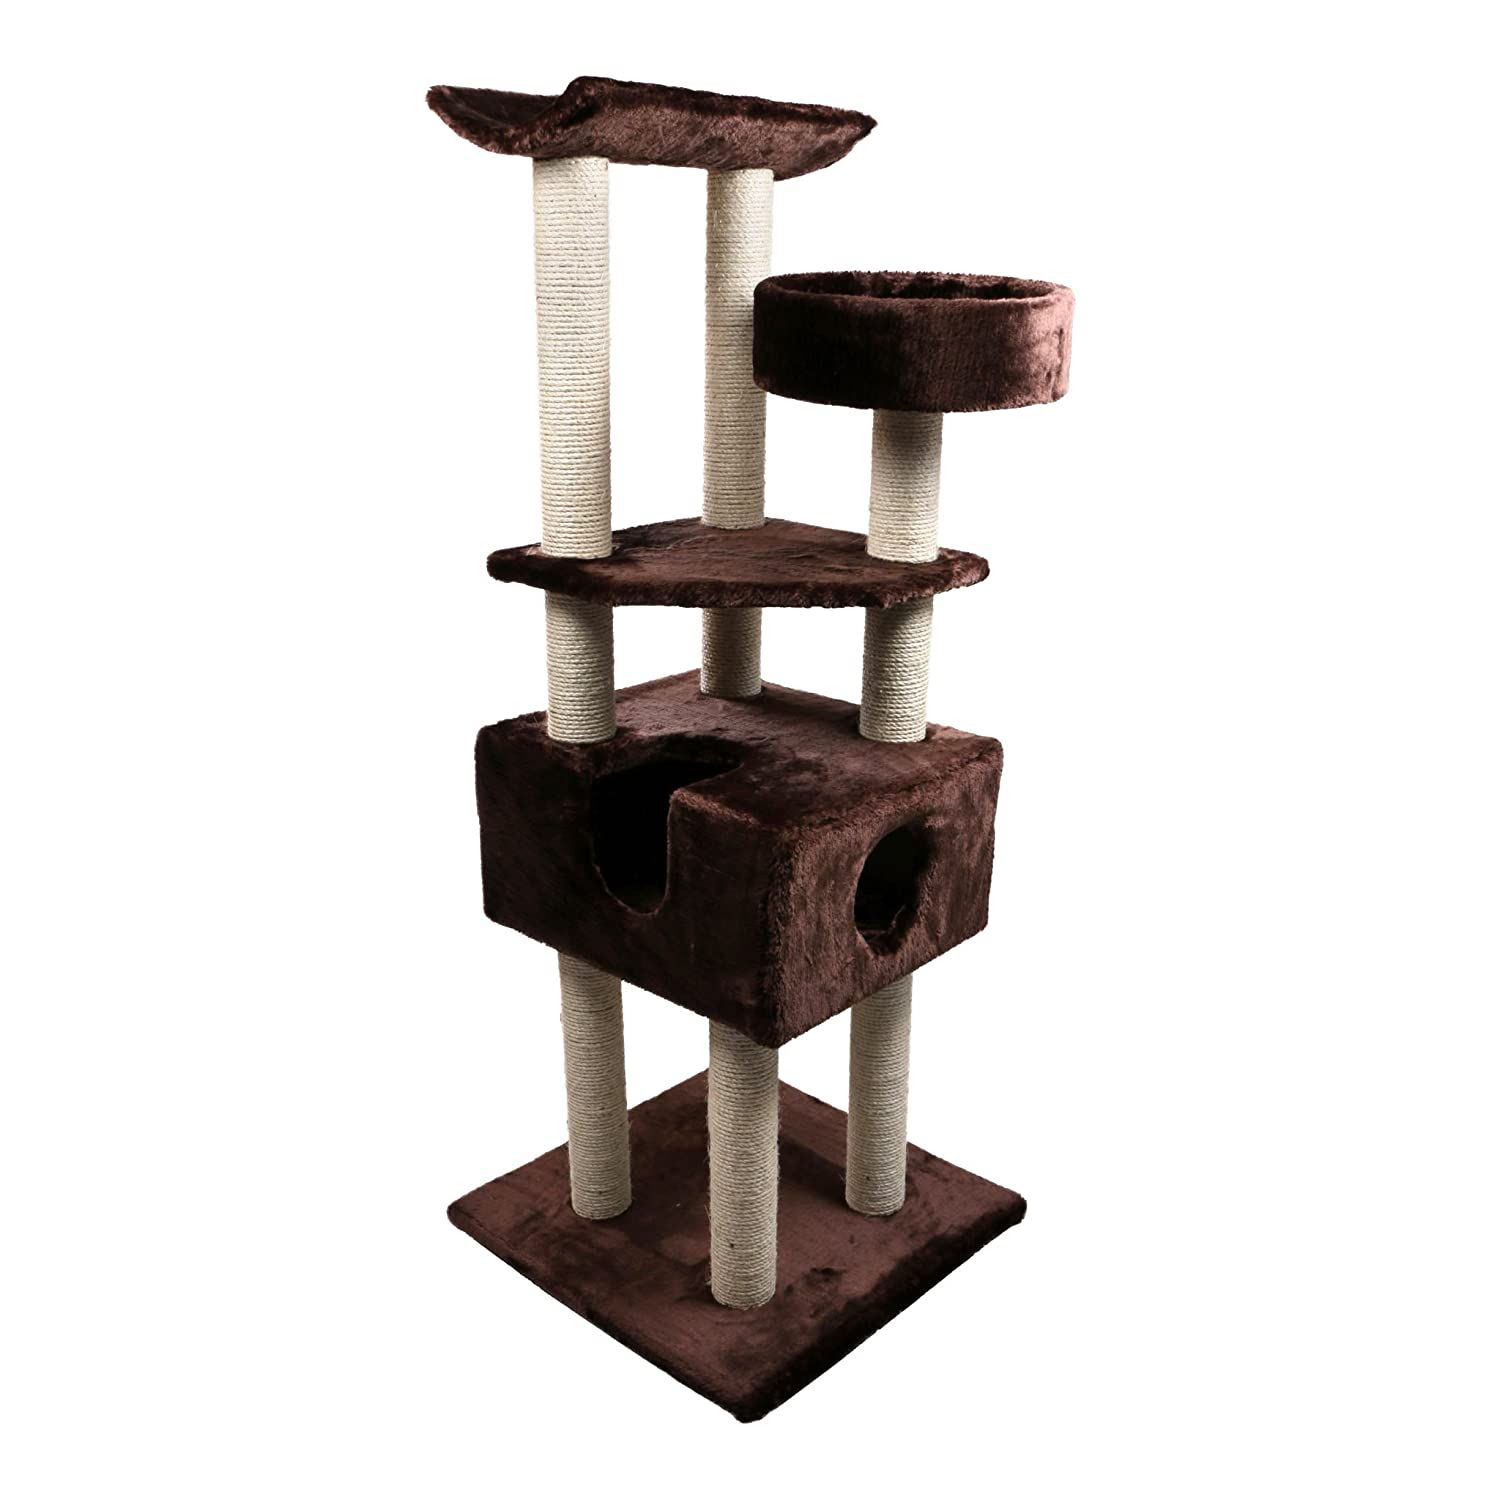 Cat Tree Tower - Large, Sturdy, 5ft Tall with Condo, Bed, Sisal Scratching Posts by Kitten Around